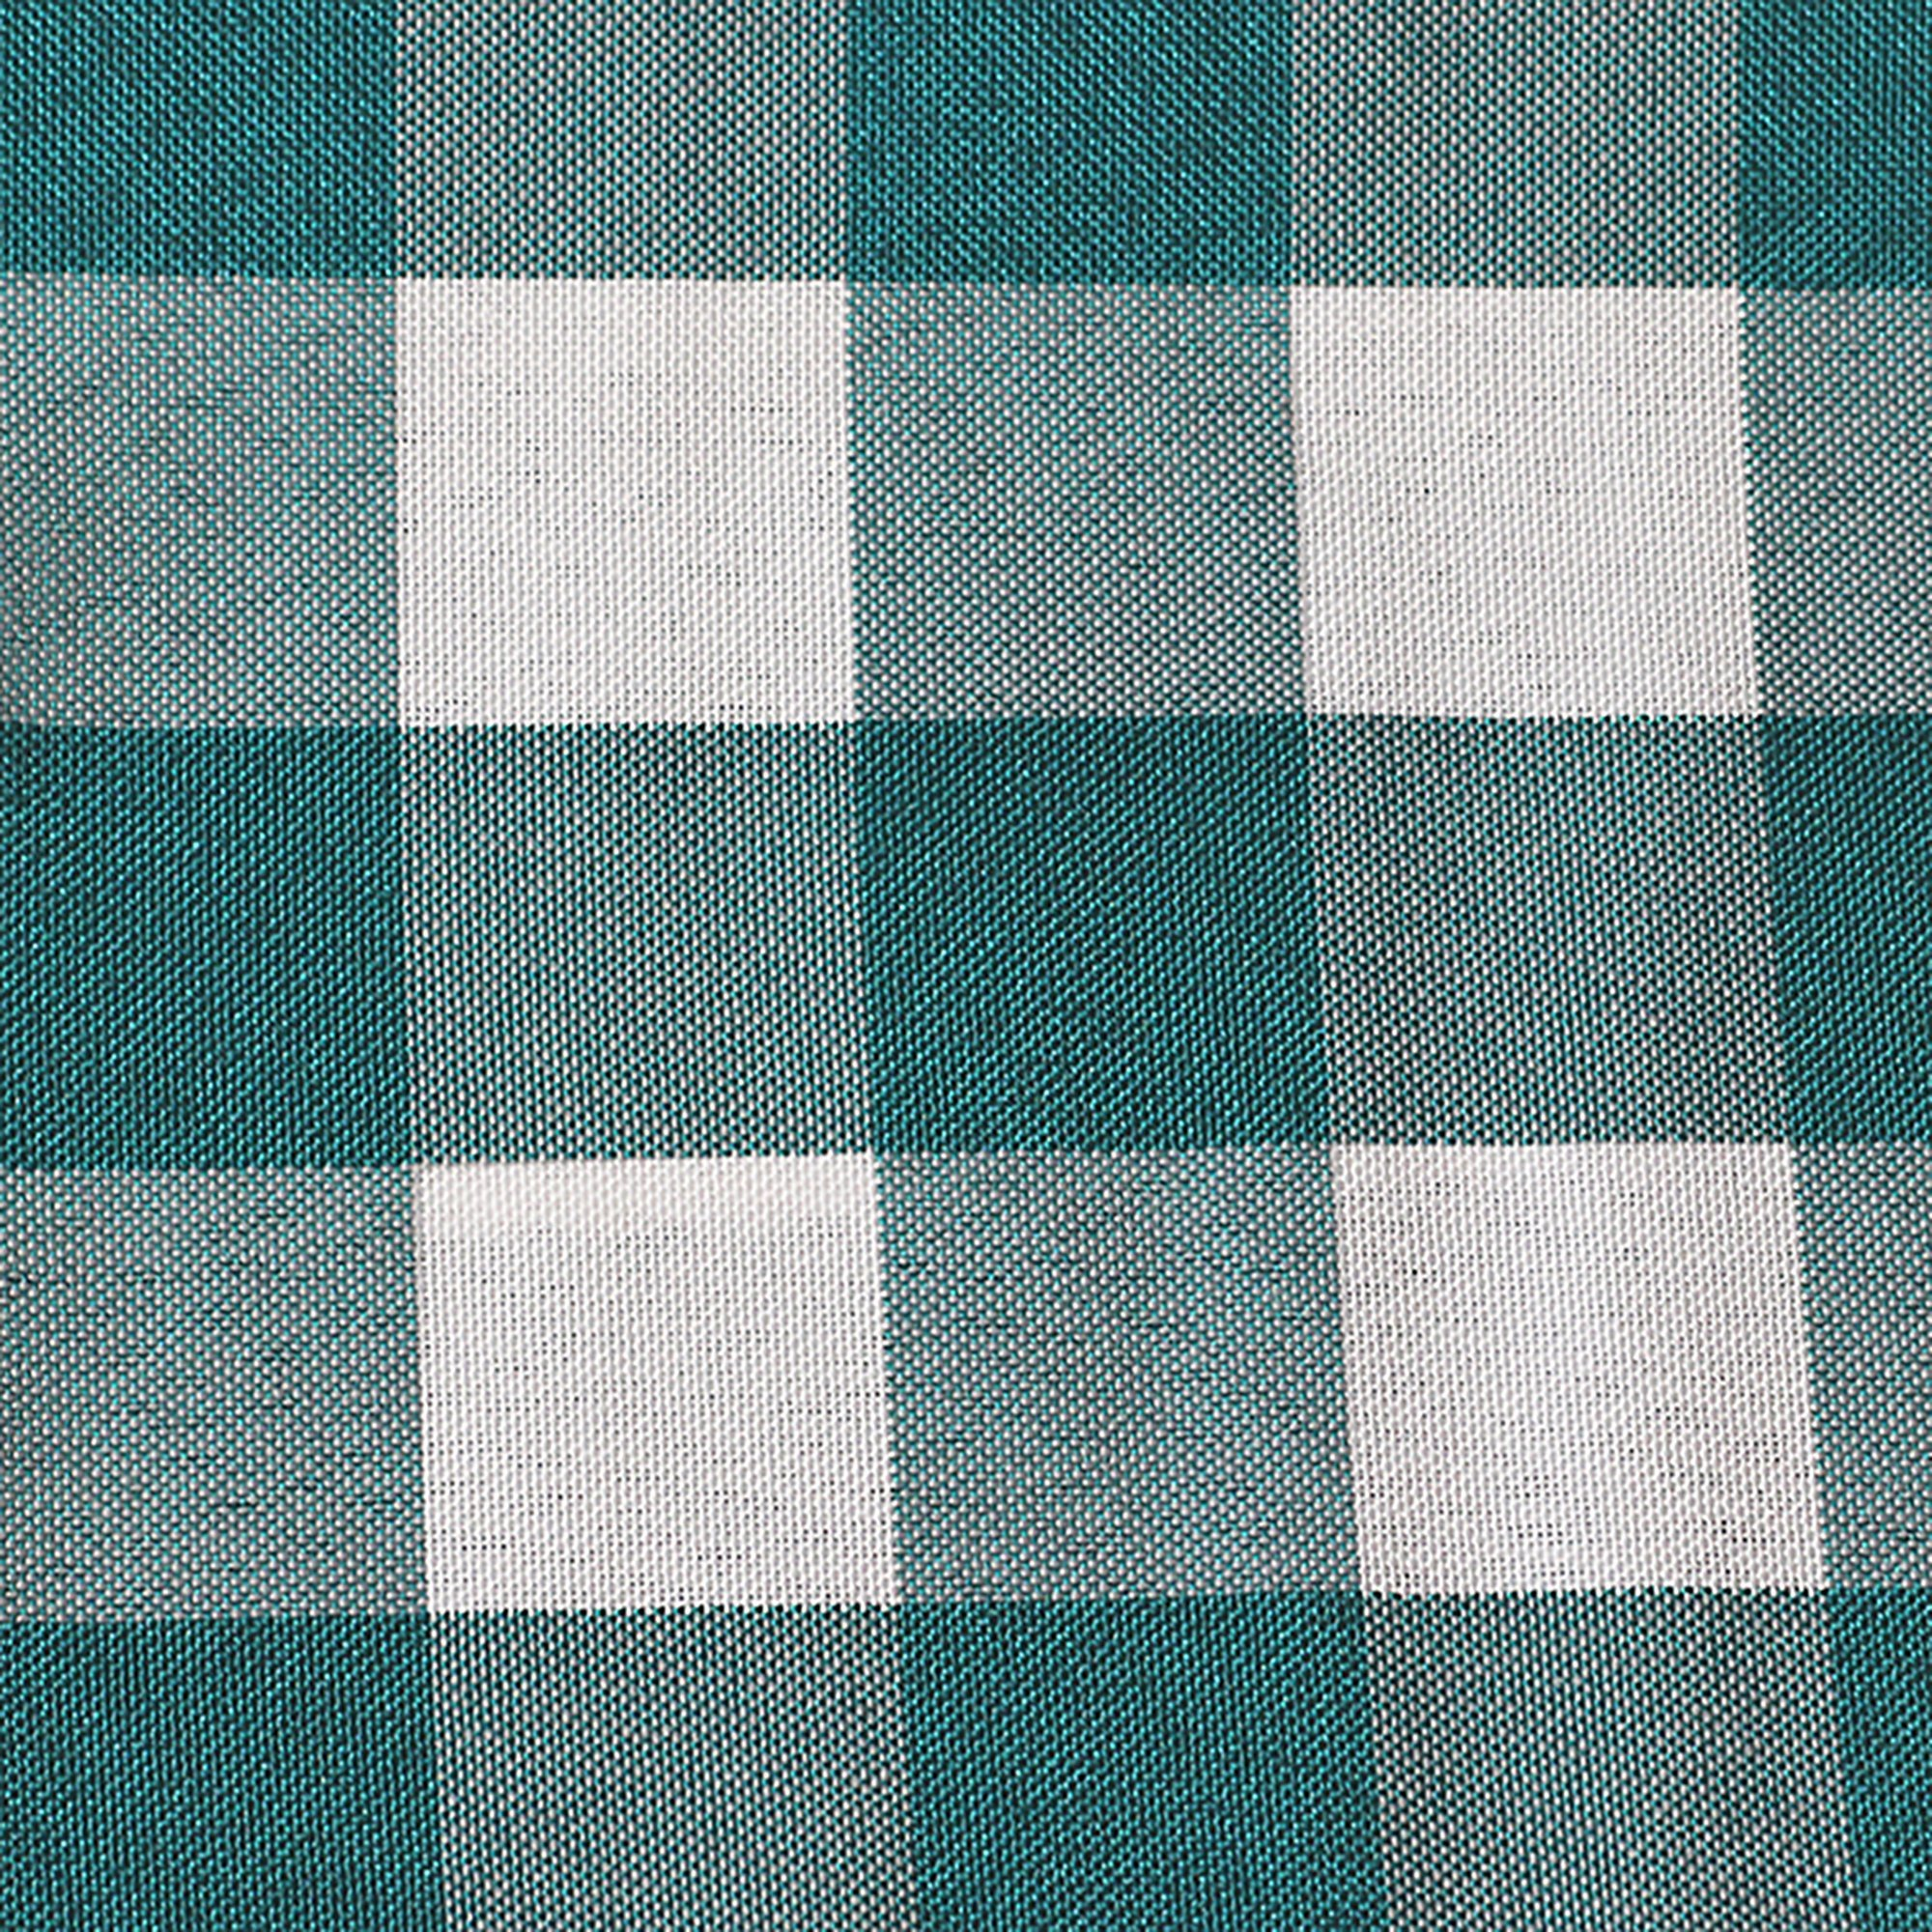 Ultimate Textile -10 Dozen- 10 x 10-Inch Polyester Checkered Cloth Cocktail Napkins, Teal and White by Ultimate Textile (Image #2)